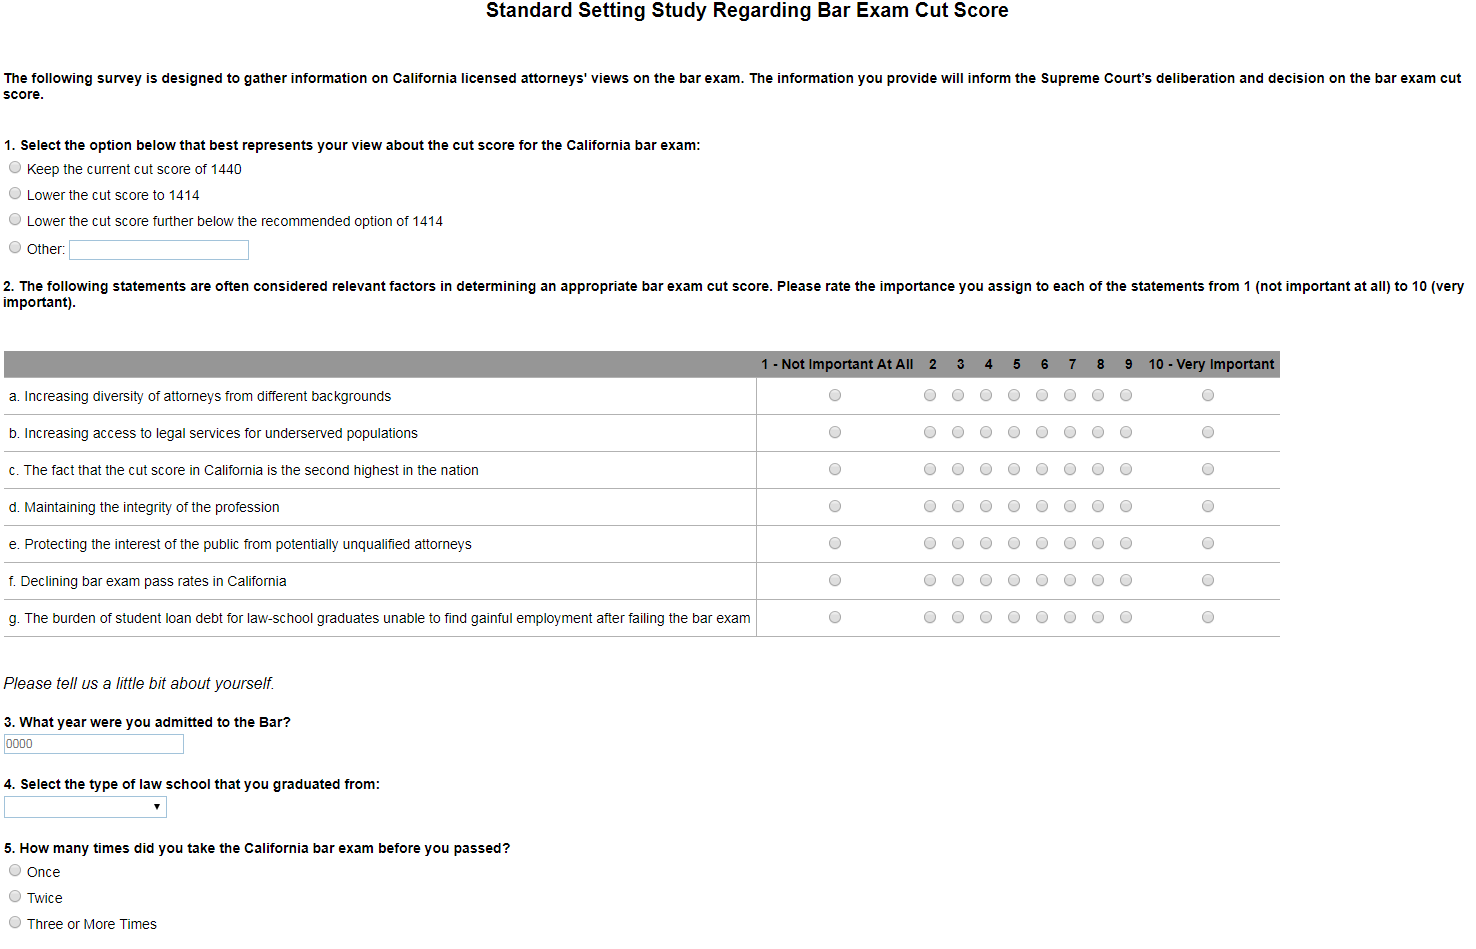 A Poor Attorney Survey From The California State Bar On Proposals To Change The Bar Exam Cut Score Excess Of Democracy